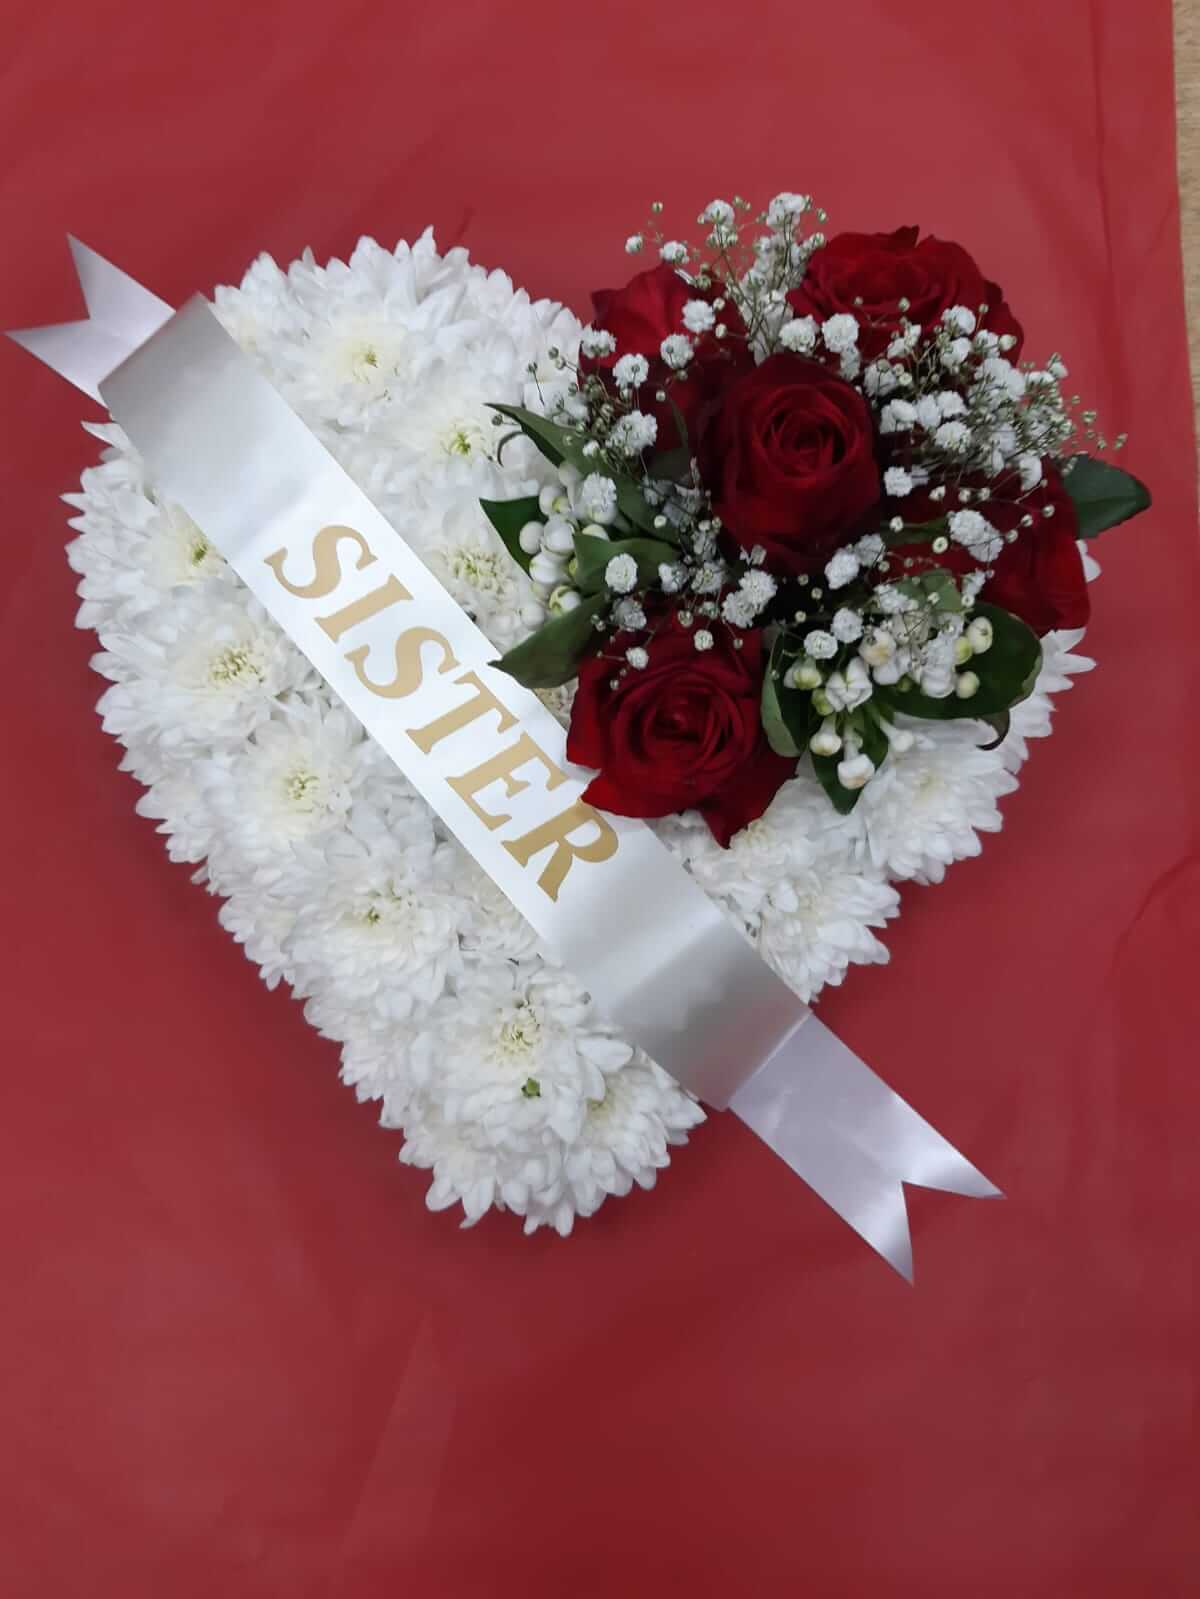 Funeral closed heart white base with red rose spray